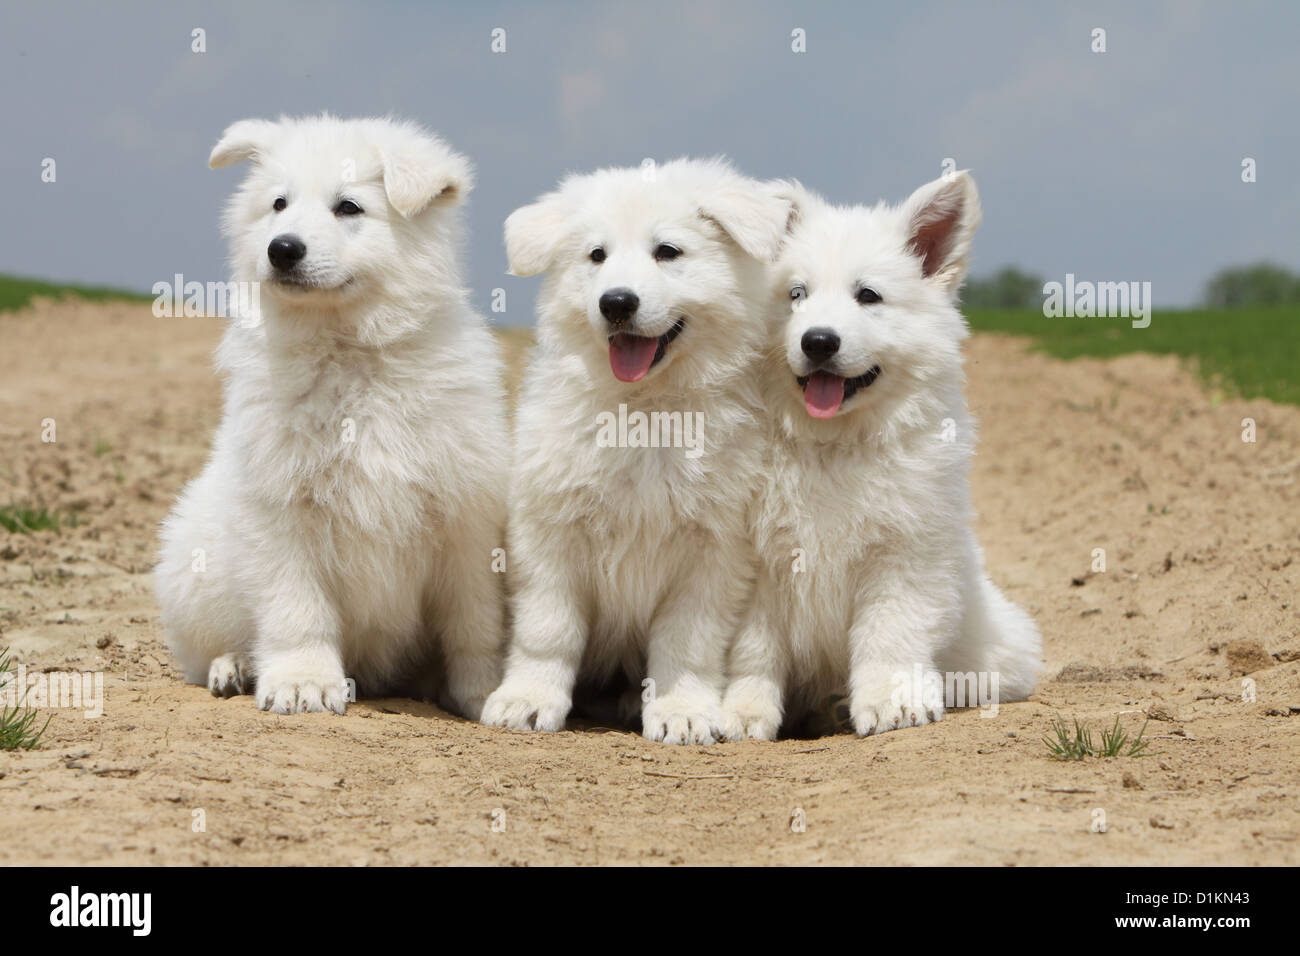 White Swiss Shepherd Dog Berger Blanc Suisse Puppies Puppy Stock